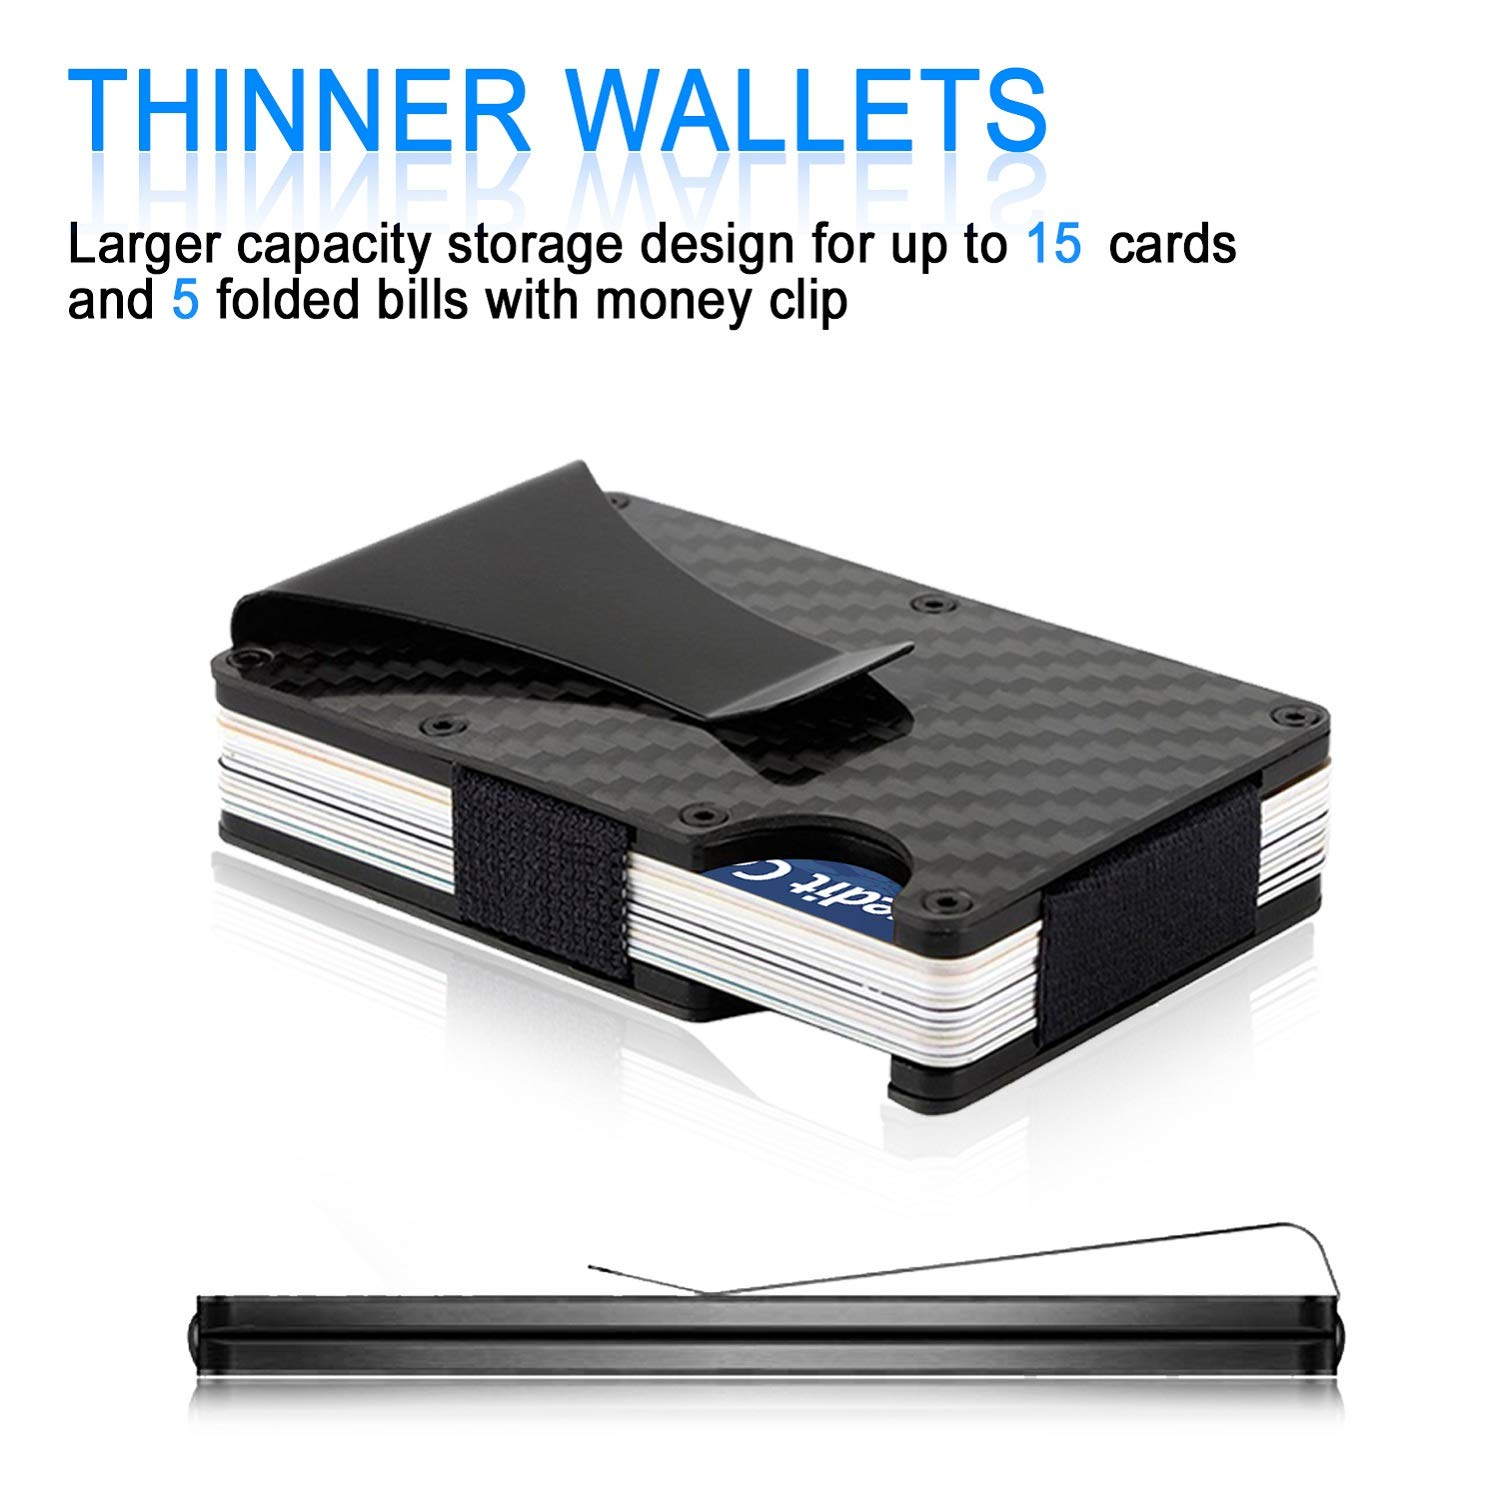 Carbon Fibre Wallet, Slim Money Clip & Minimalist RFID Blocking Front Packet Slim Wallet, Aluminum Metal Wallet & Business Card Holder Billfolds for Men and Women